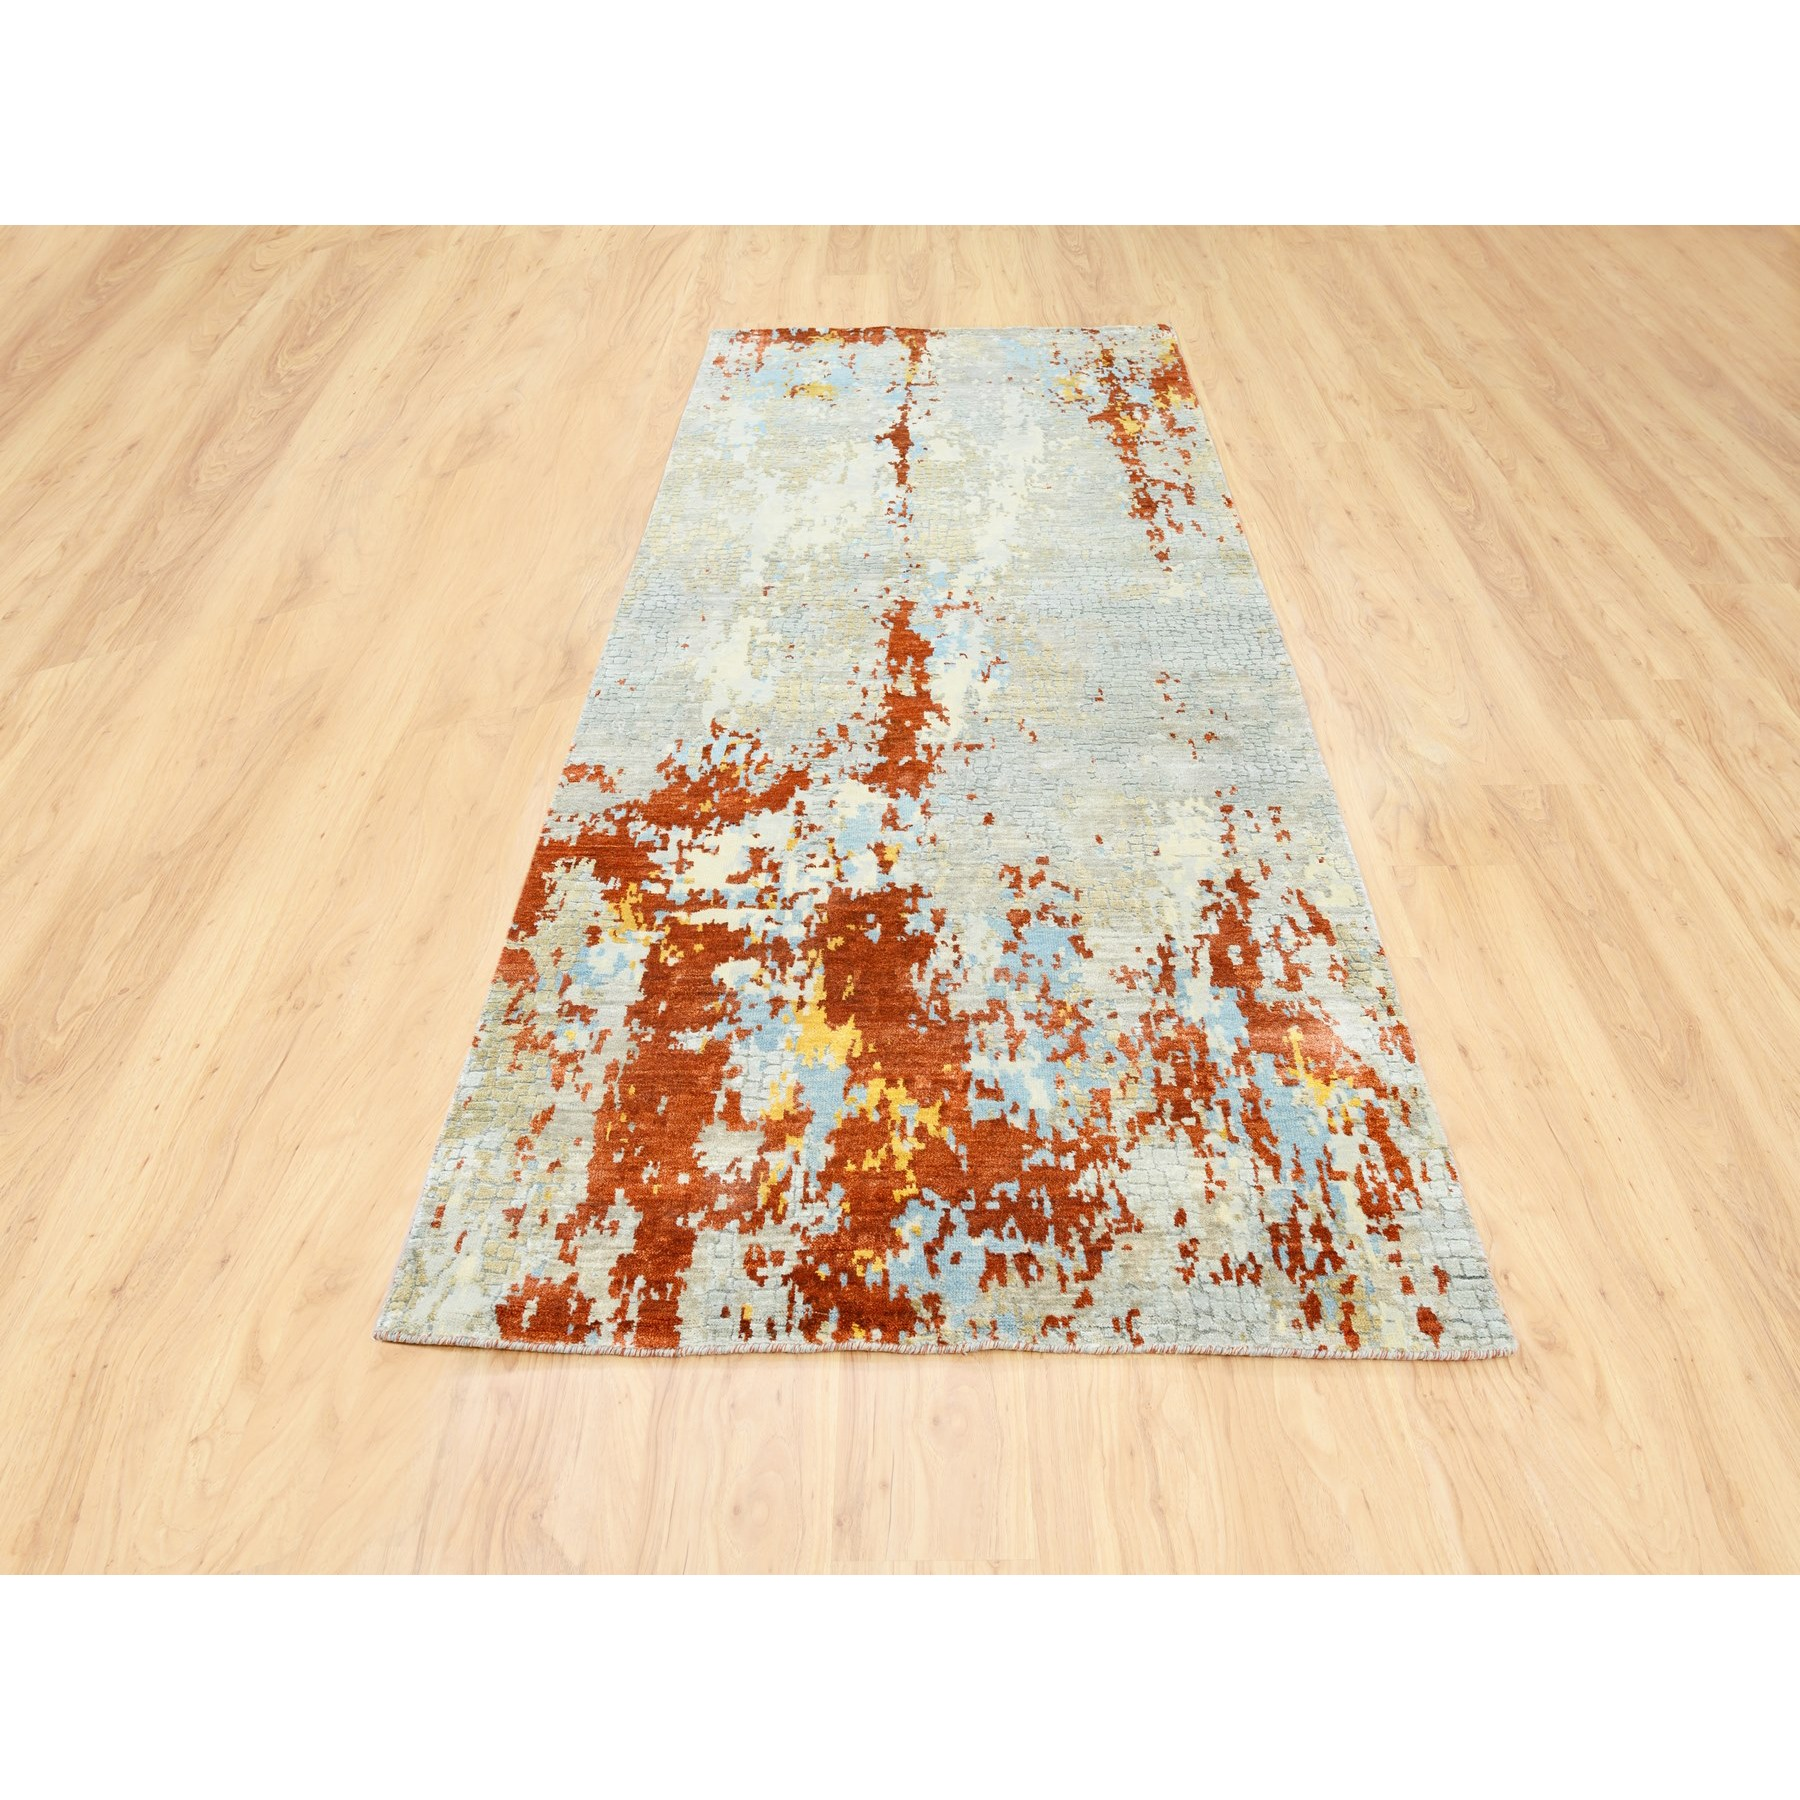 """4'1""""x9'10"""" Wool and Silk Abstract with Fire Mosaic Design Hand Knotted Runner Oriental Rug 6215"""